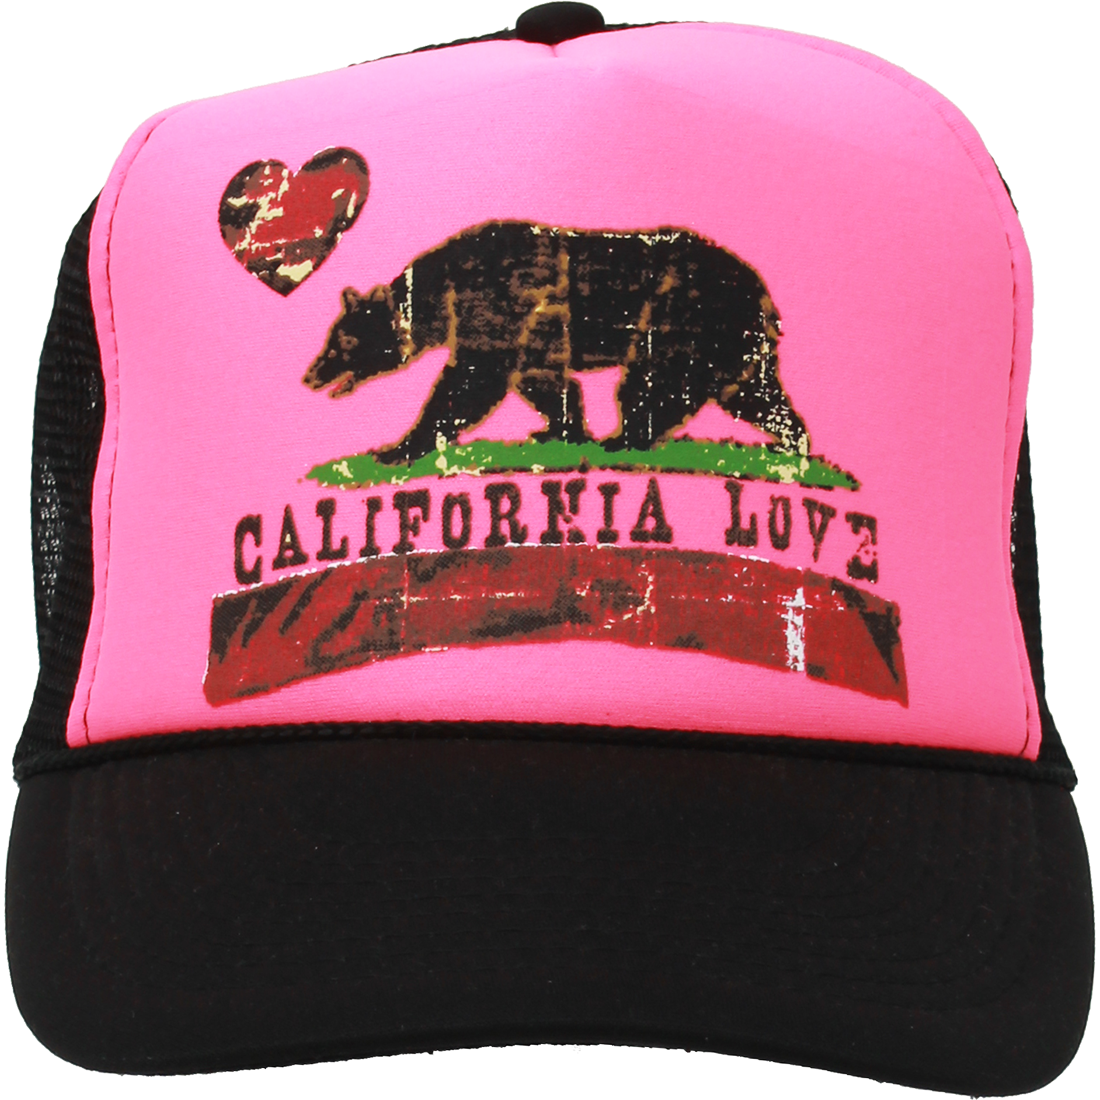 3d6fec8ca59 California Love Republic Snapback Hat Distressed Curve Bill Pink Black -  Pink Crown